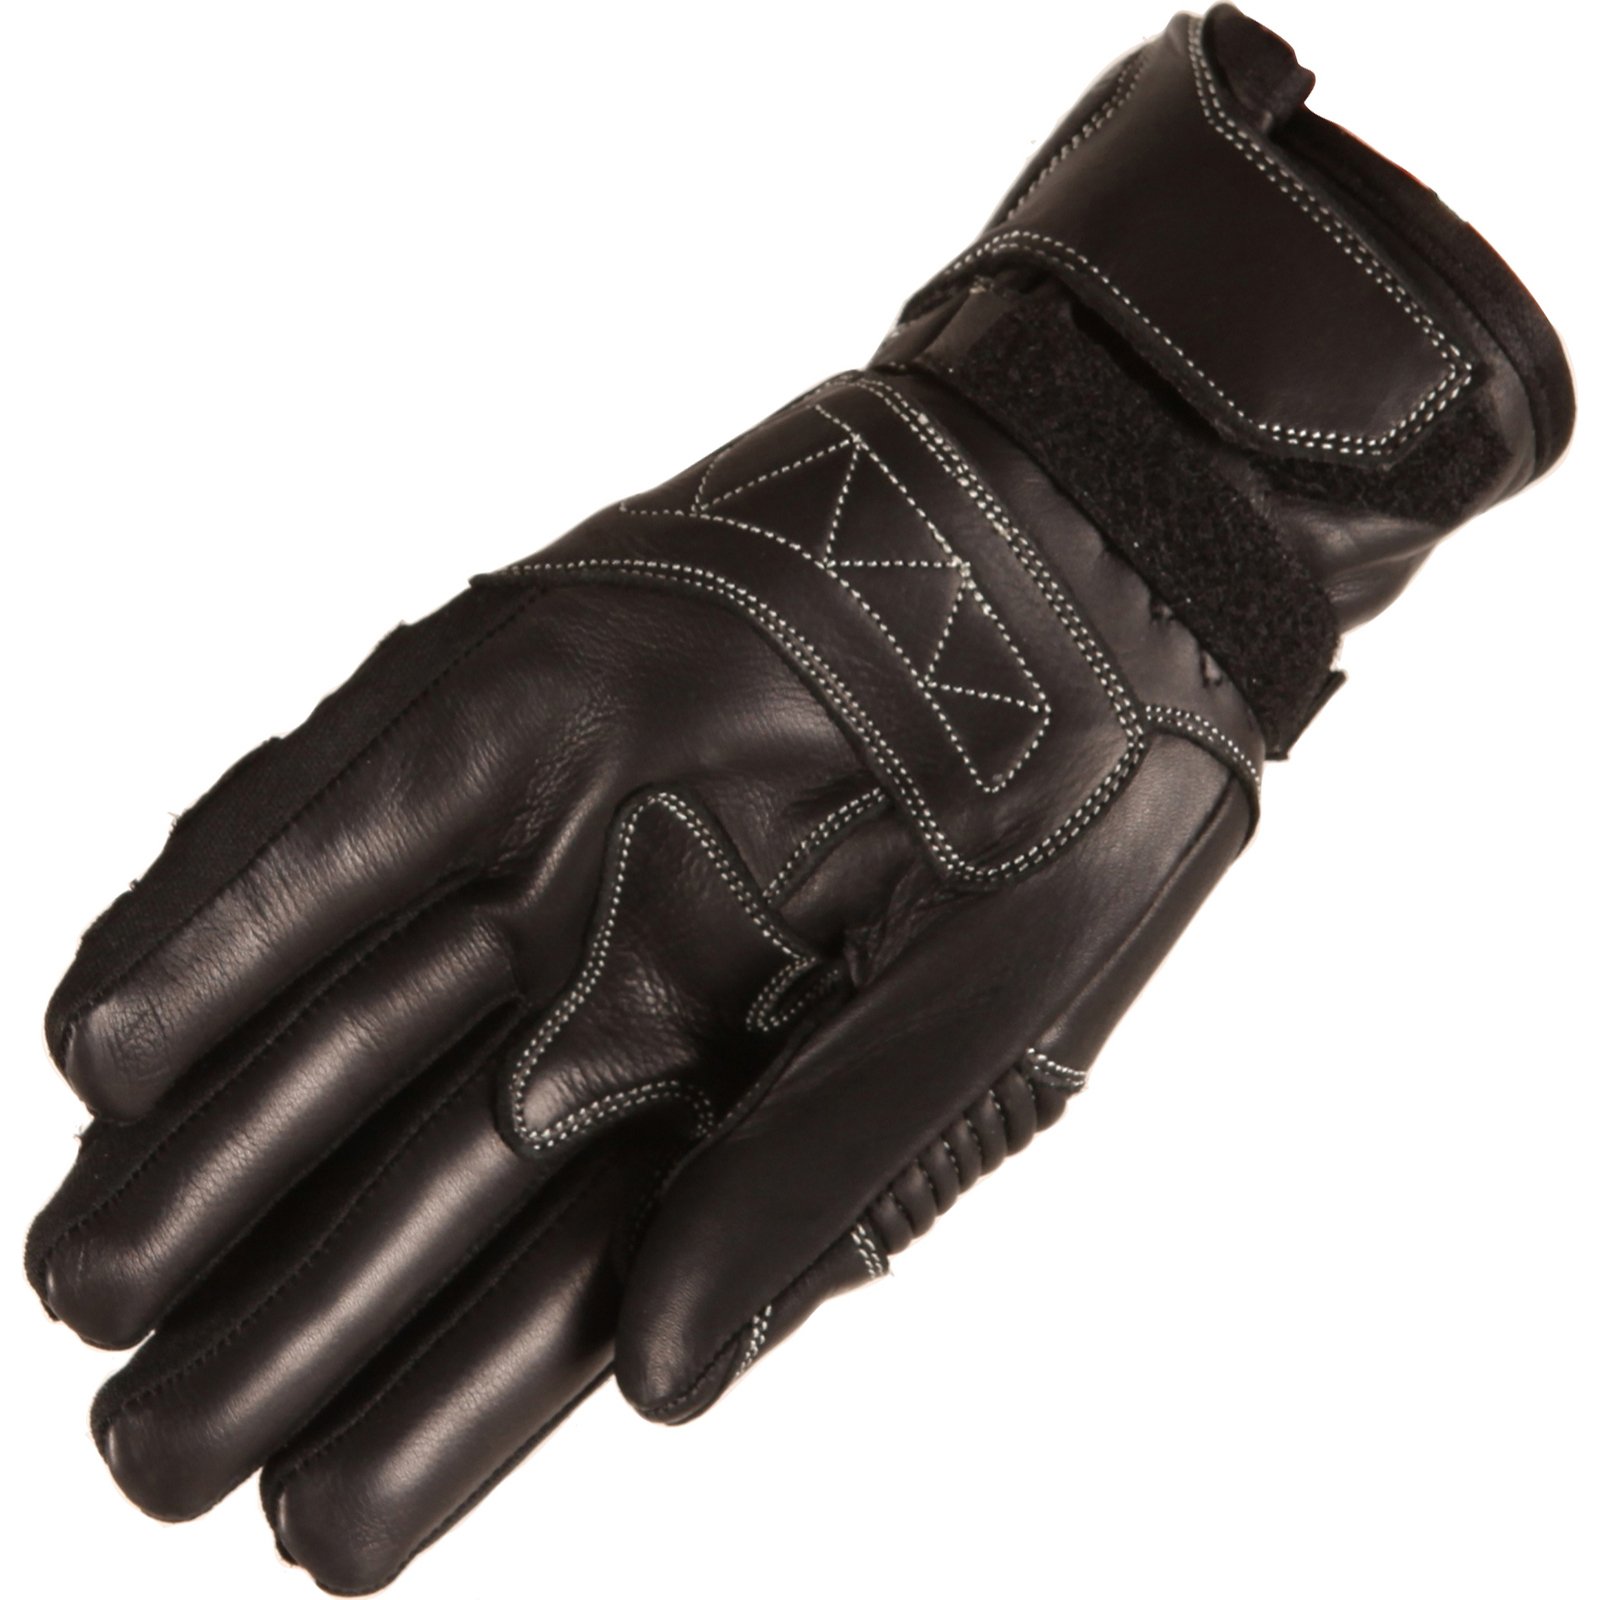 Buffalo-Bambino-Youth-Motorcycle-Gloves-Leather-Junior-Childrens-Hard-Knuckles